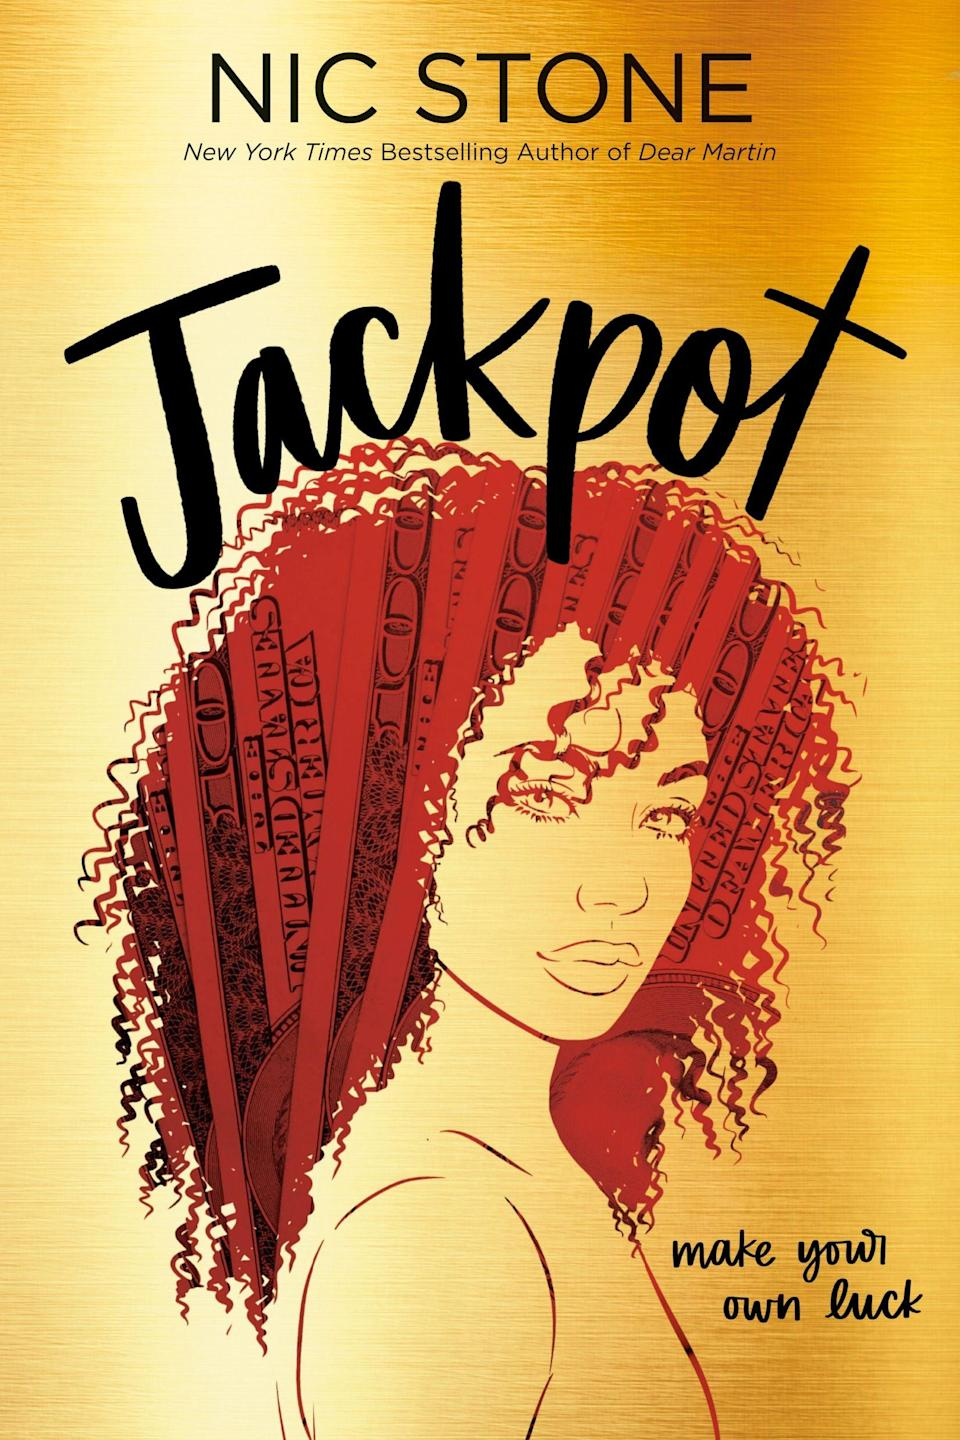 <p><strong><span>Jackpot</span></strong> by Nic Stone is one part YA romance, one part examination of class and wealth. Rico, a teenage cashier at a gas station, discovers that she sold a winning lottery ticket that no one yet has claimed. She teams up with wealthy, privileged classmate Zan to try to track down the lotto winner - and maybe change her own life in the process - but the investigation reveals much more than she bargained for.</p>